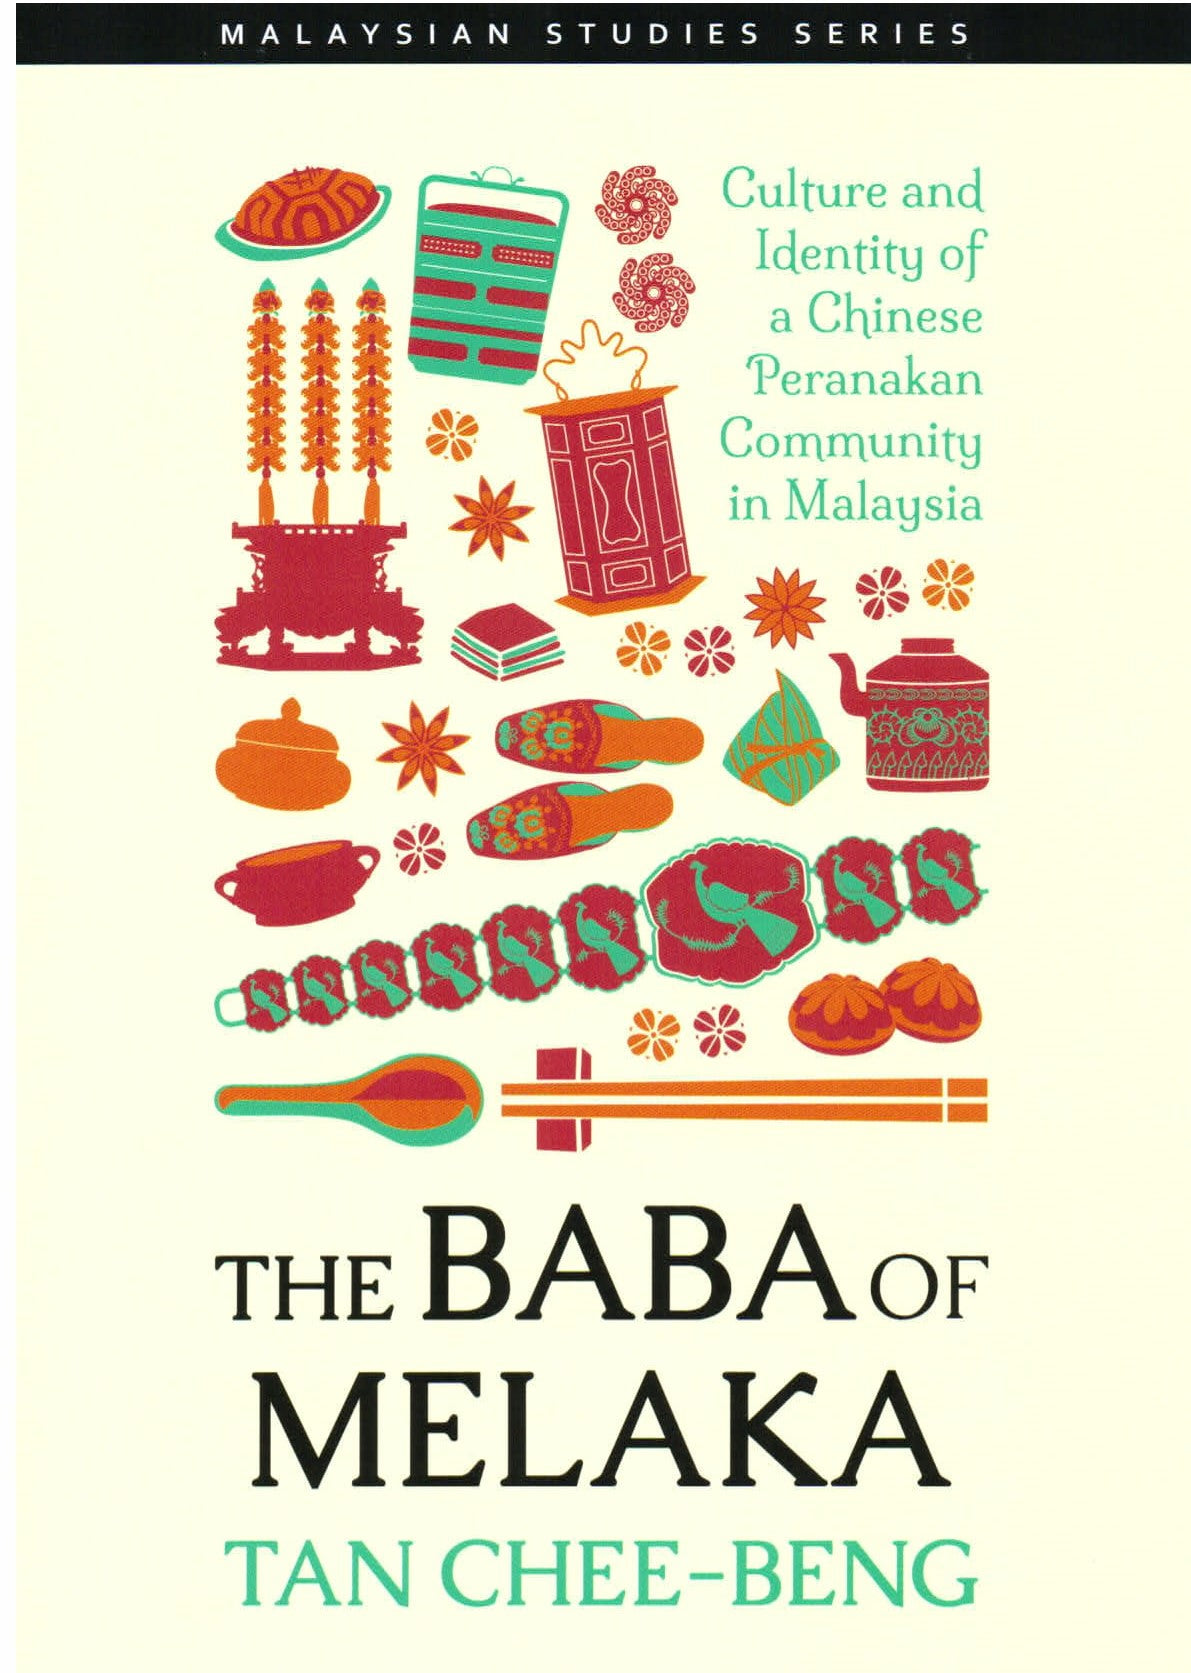 The Baba of Melaka Culture and Identity of a Chinese Peranakan Community in Malaysia